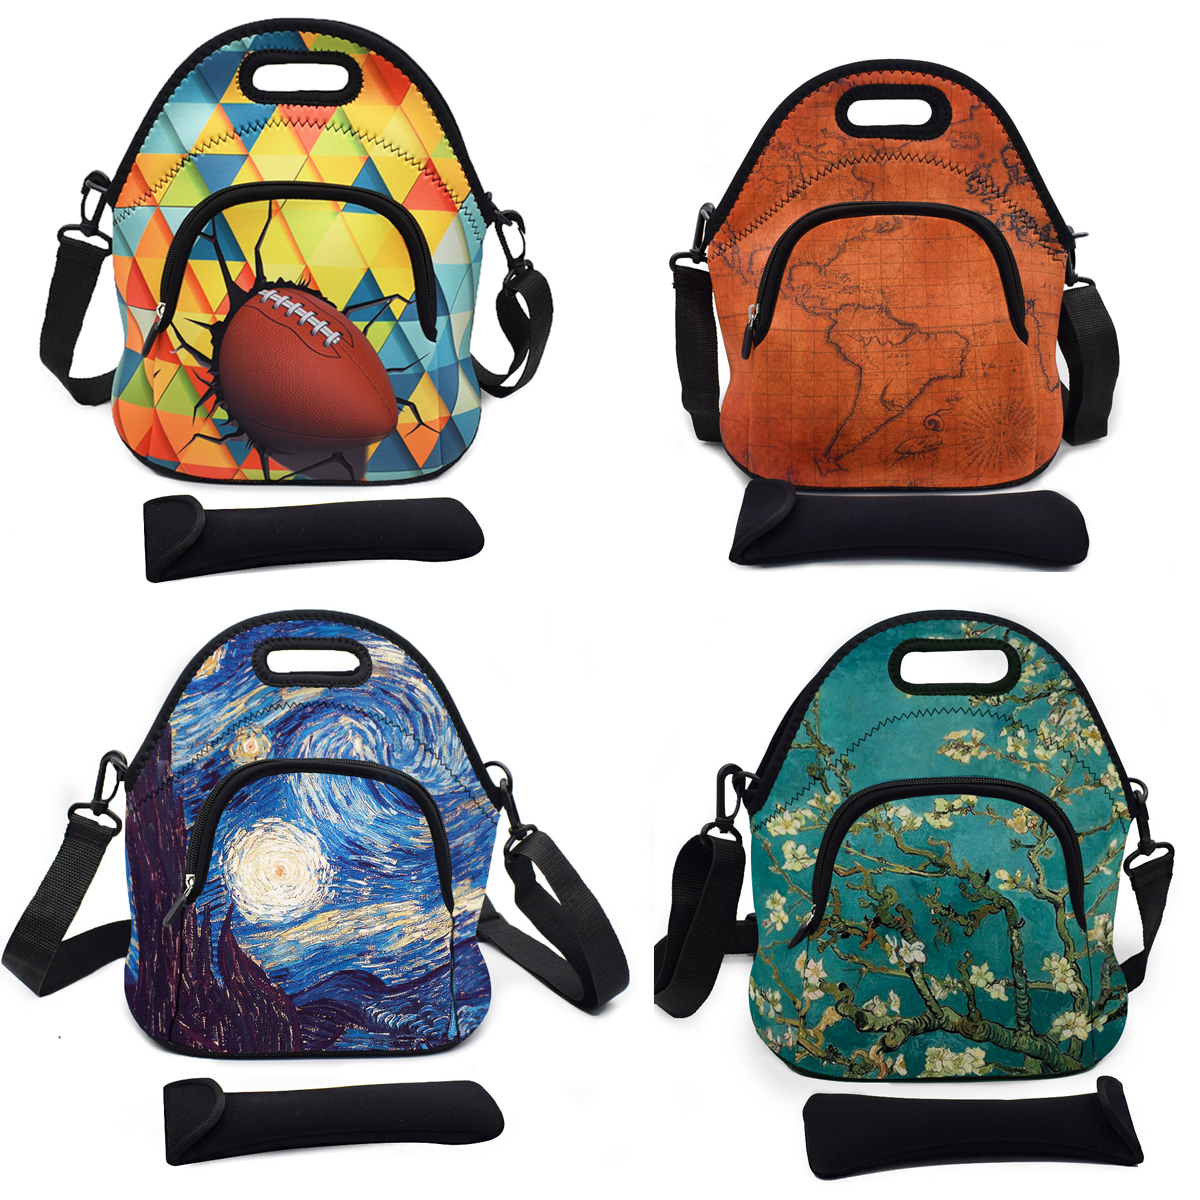 Neoprene Insulated Lunch Bag Large Thermal Storage Box Tote Container With Strap